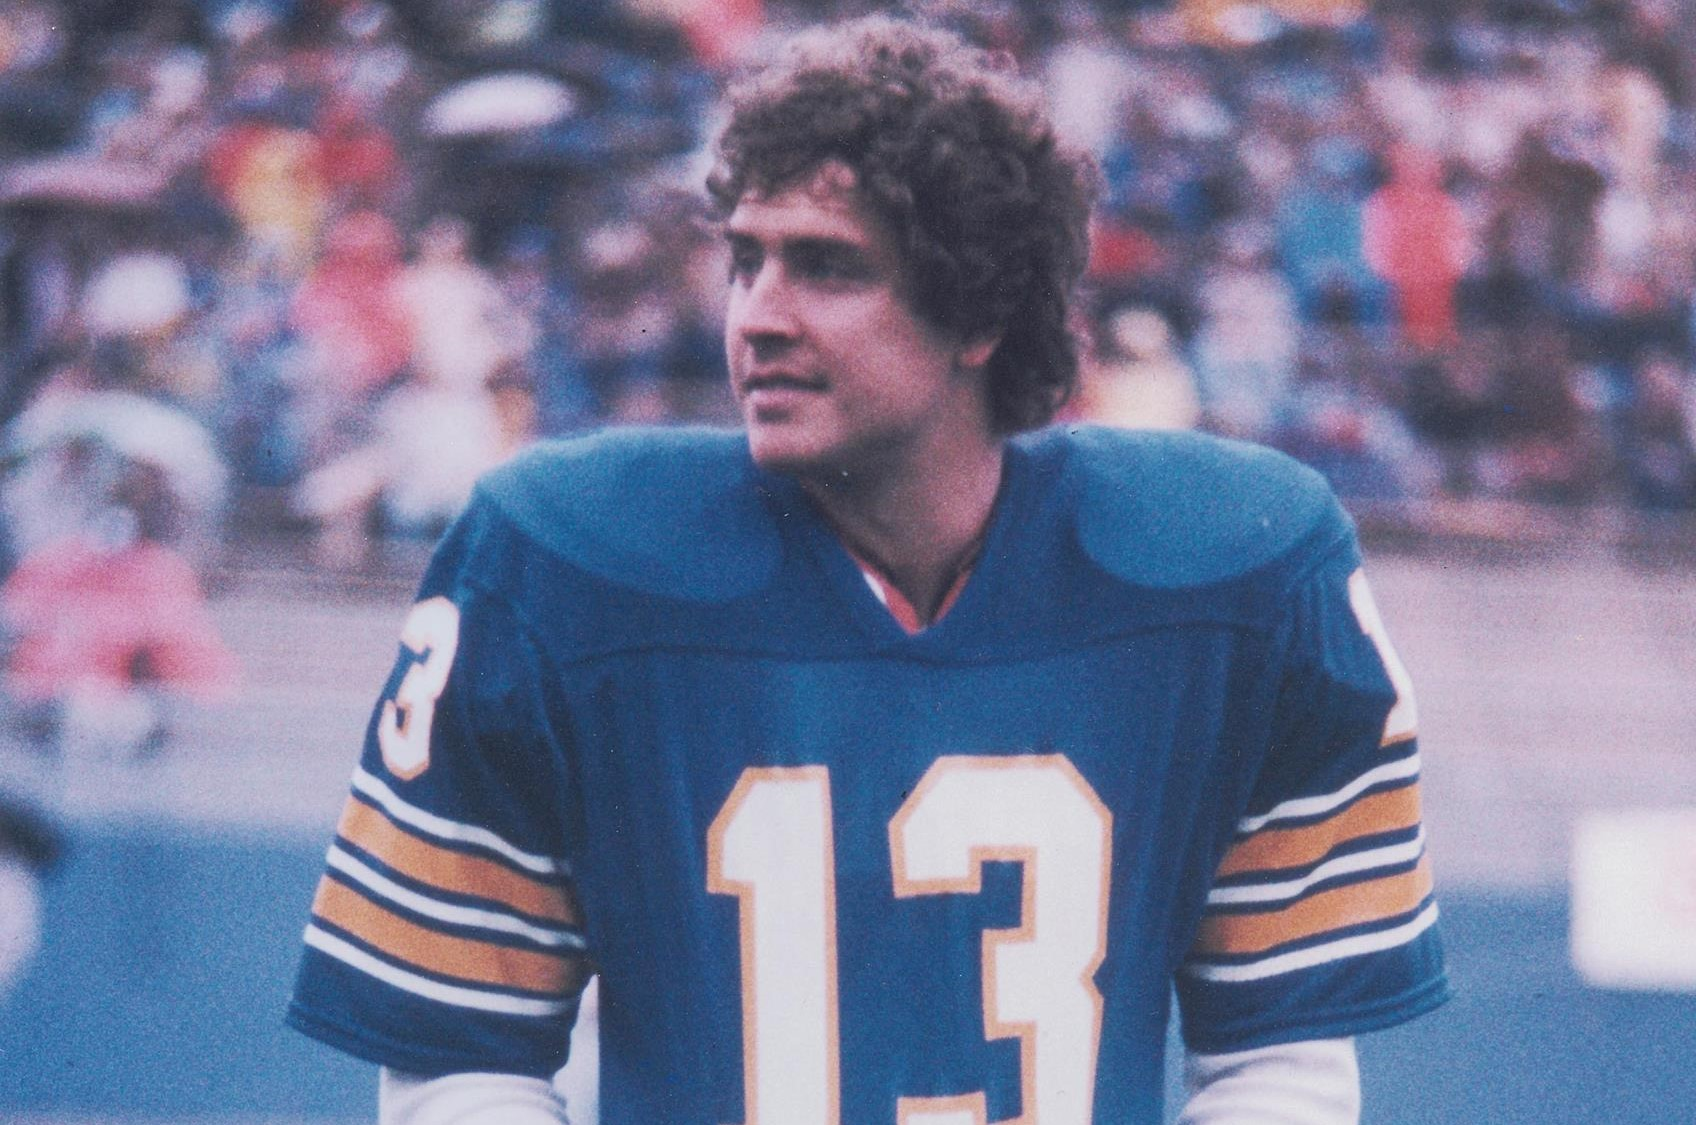 c5e9221fa Dan Marino - General - University of Pittsburgh Athletics